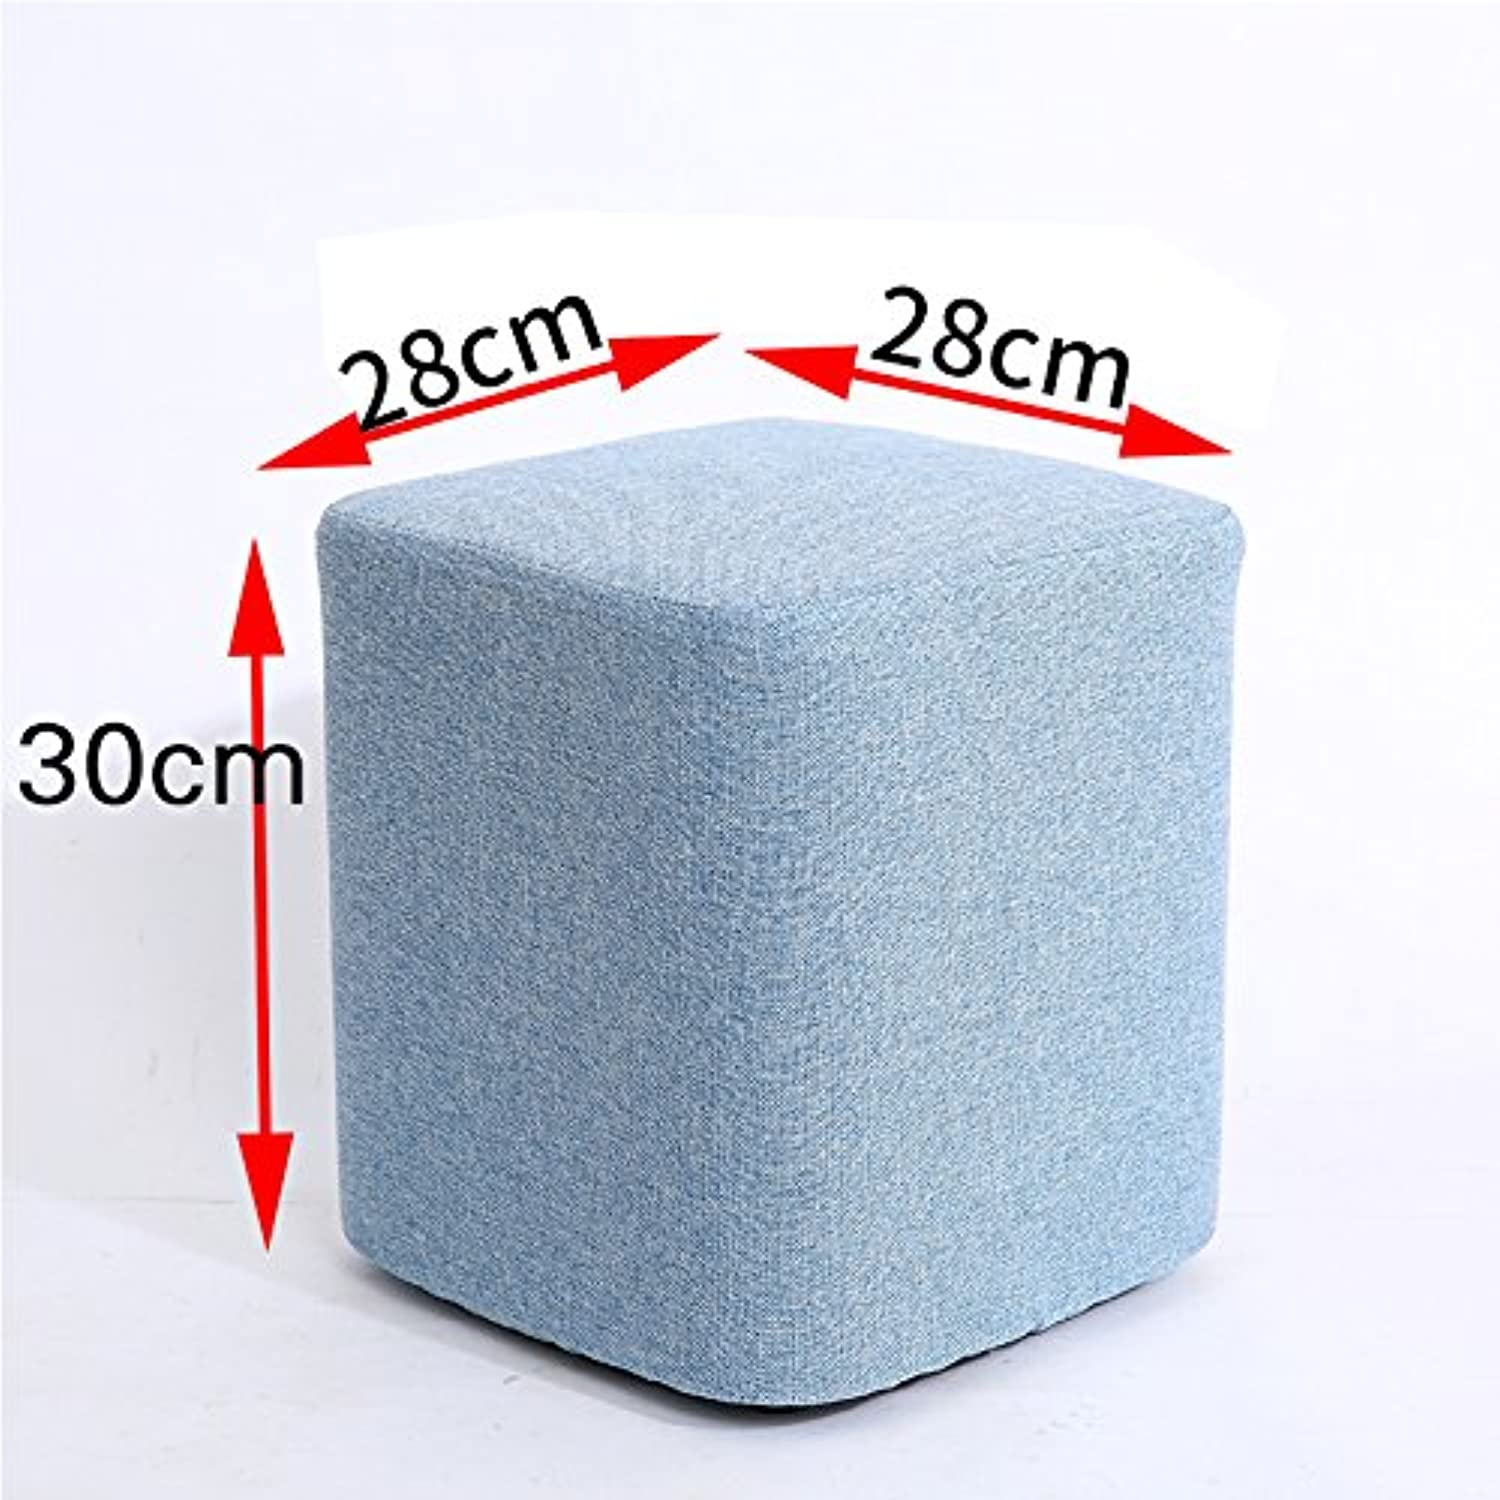 STJK BMJW Drinking Tea Thick Soft Stools Benches Fabrics Stool Home Independent Bedroom Light bluee 30Cm